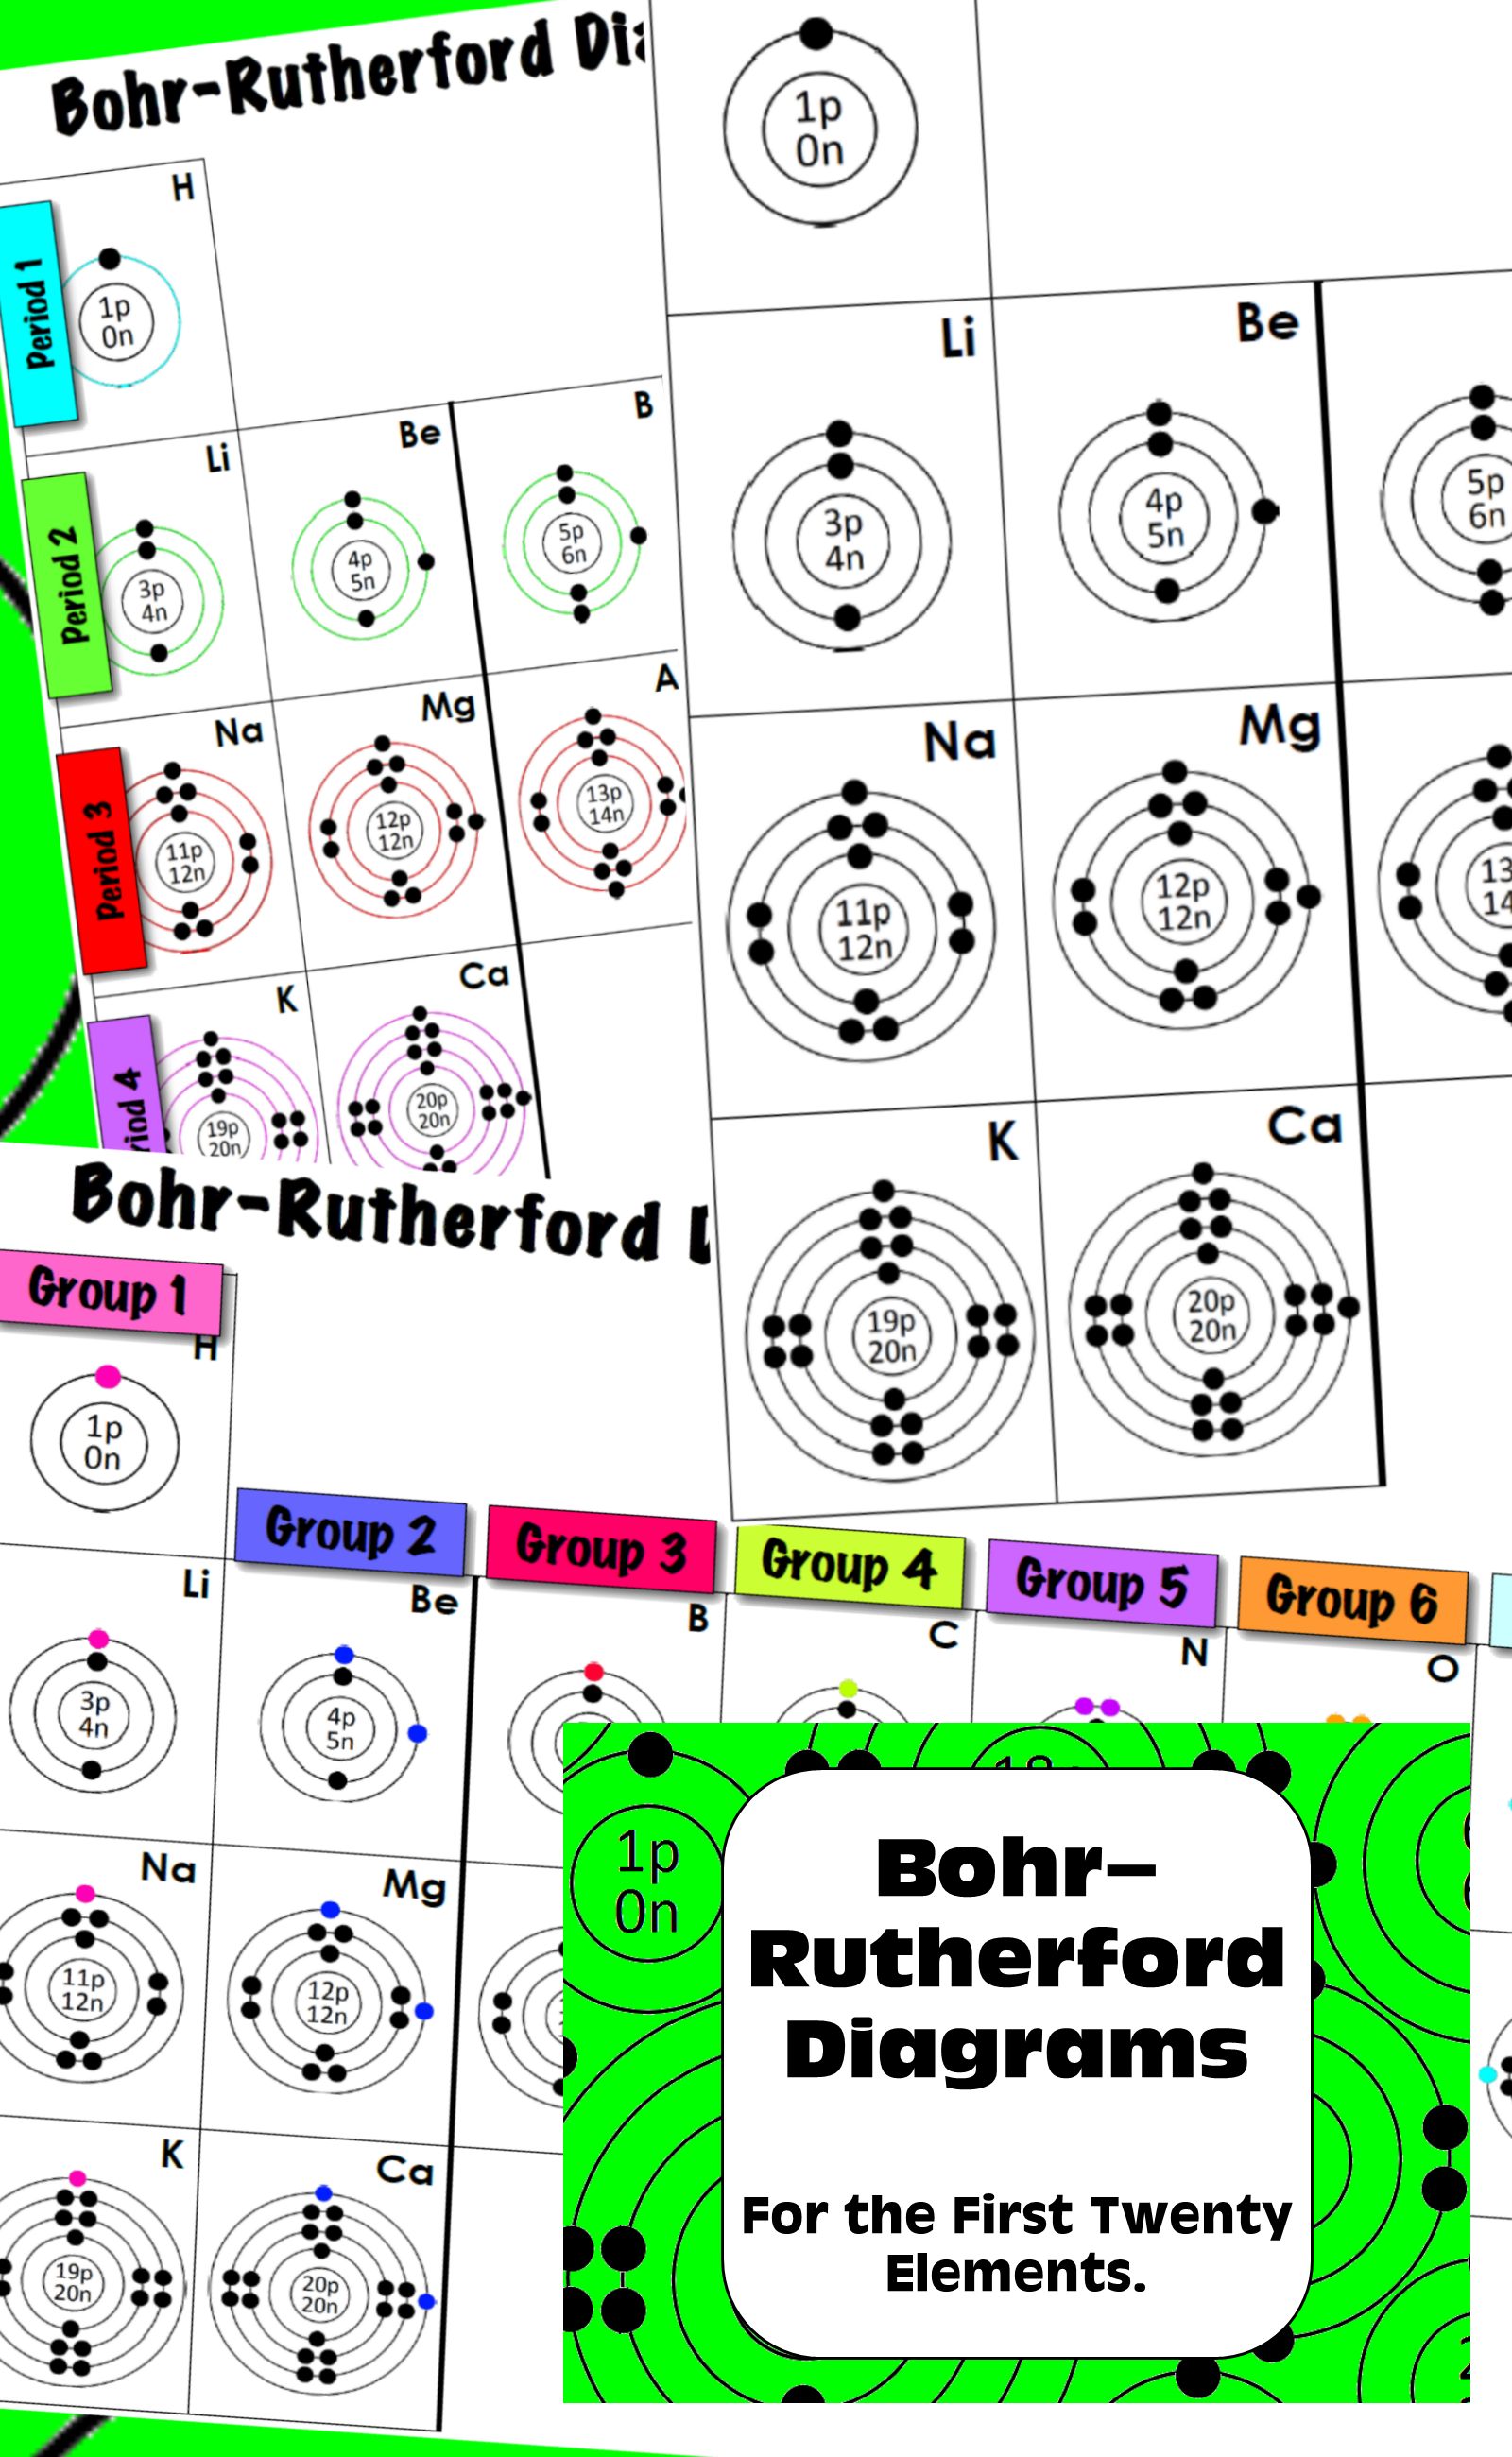 Atomic Structure Bohr Models BohrRutherford Diagrams for